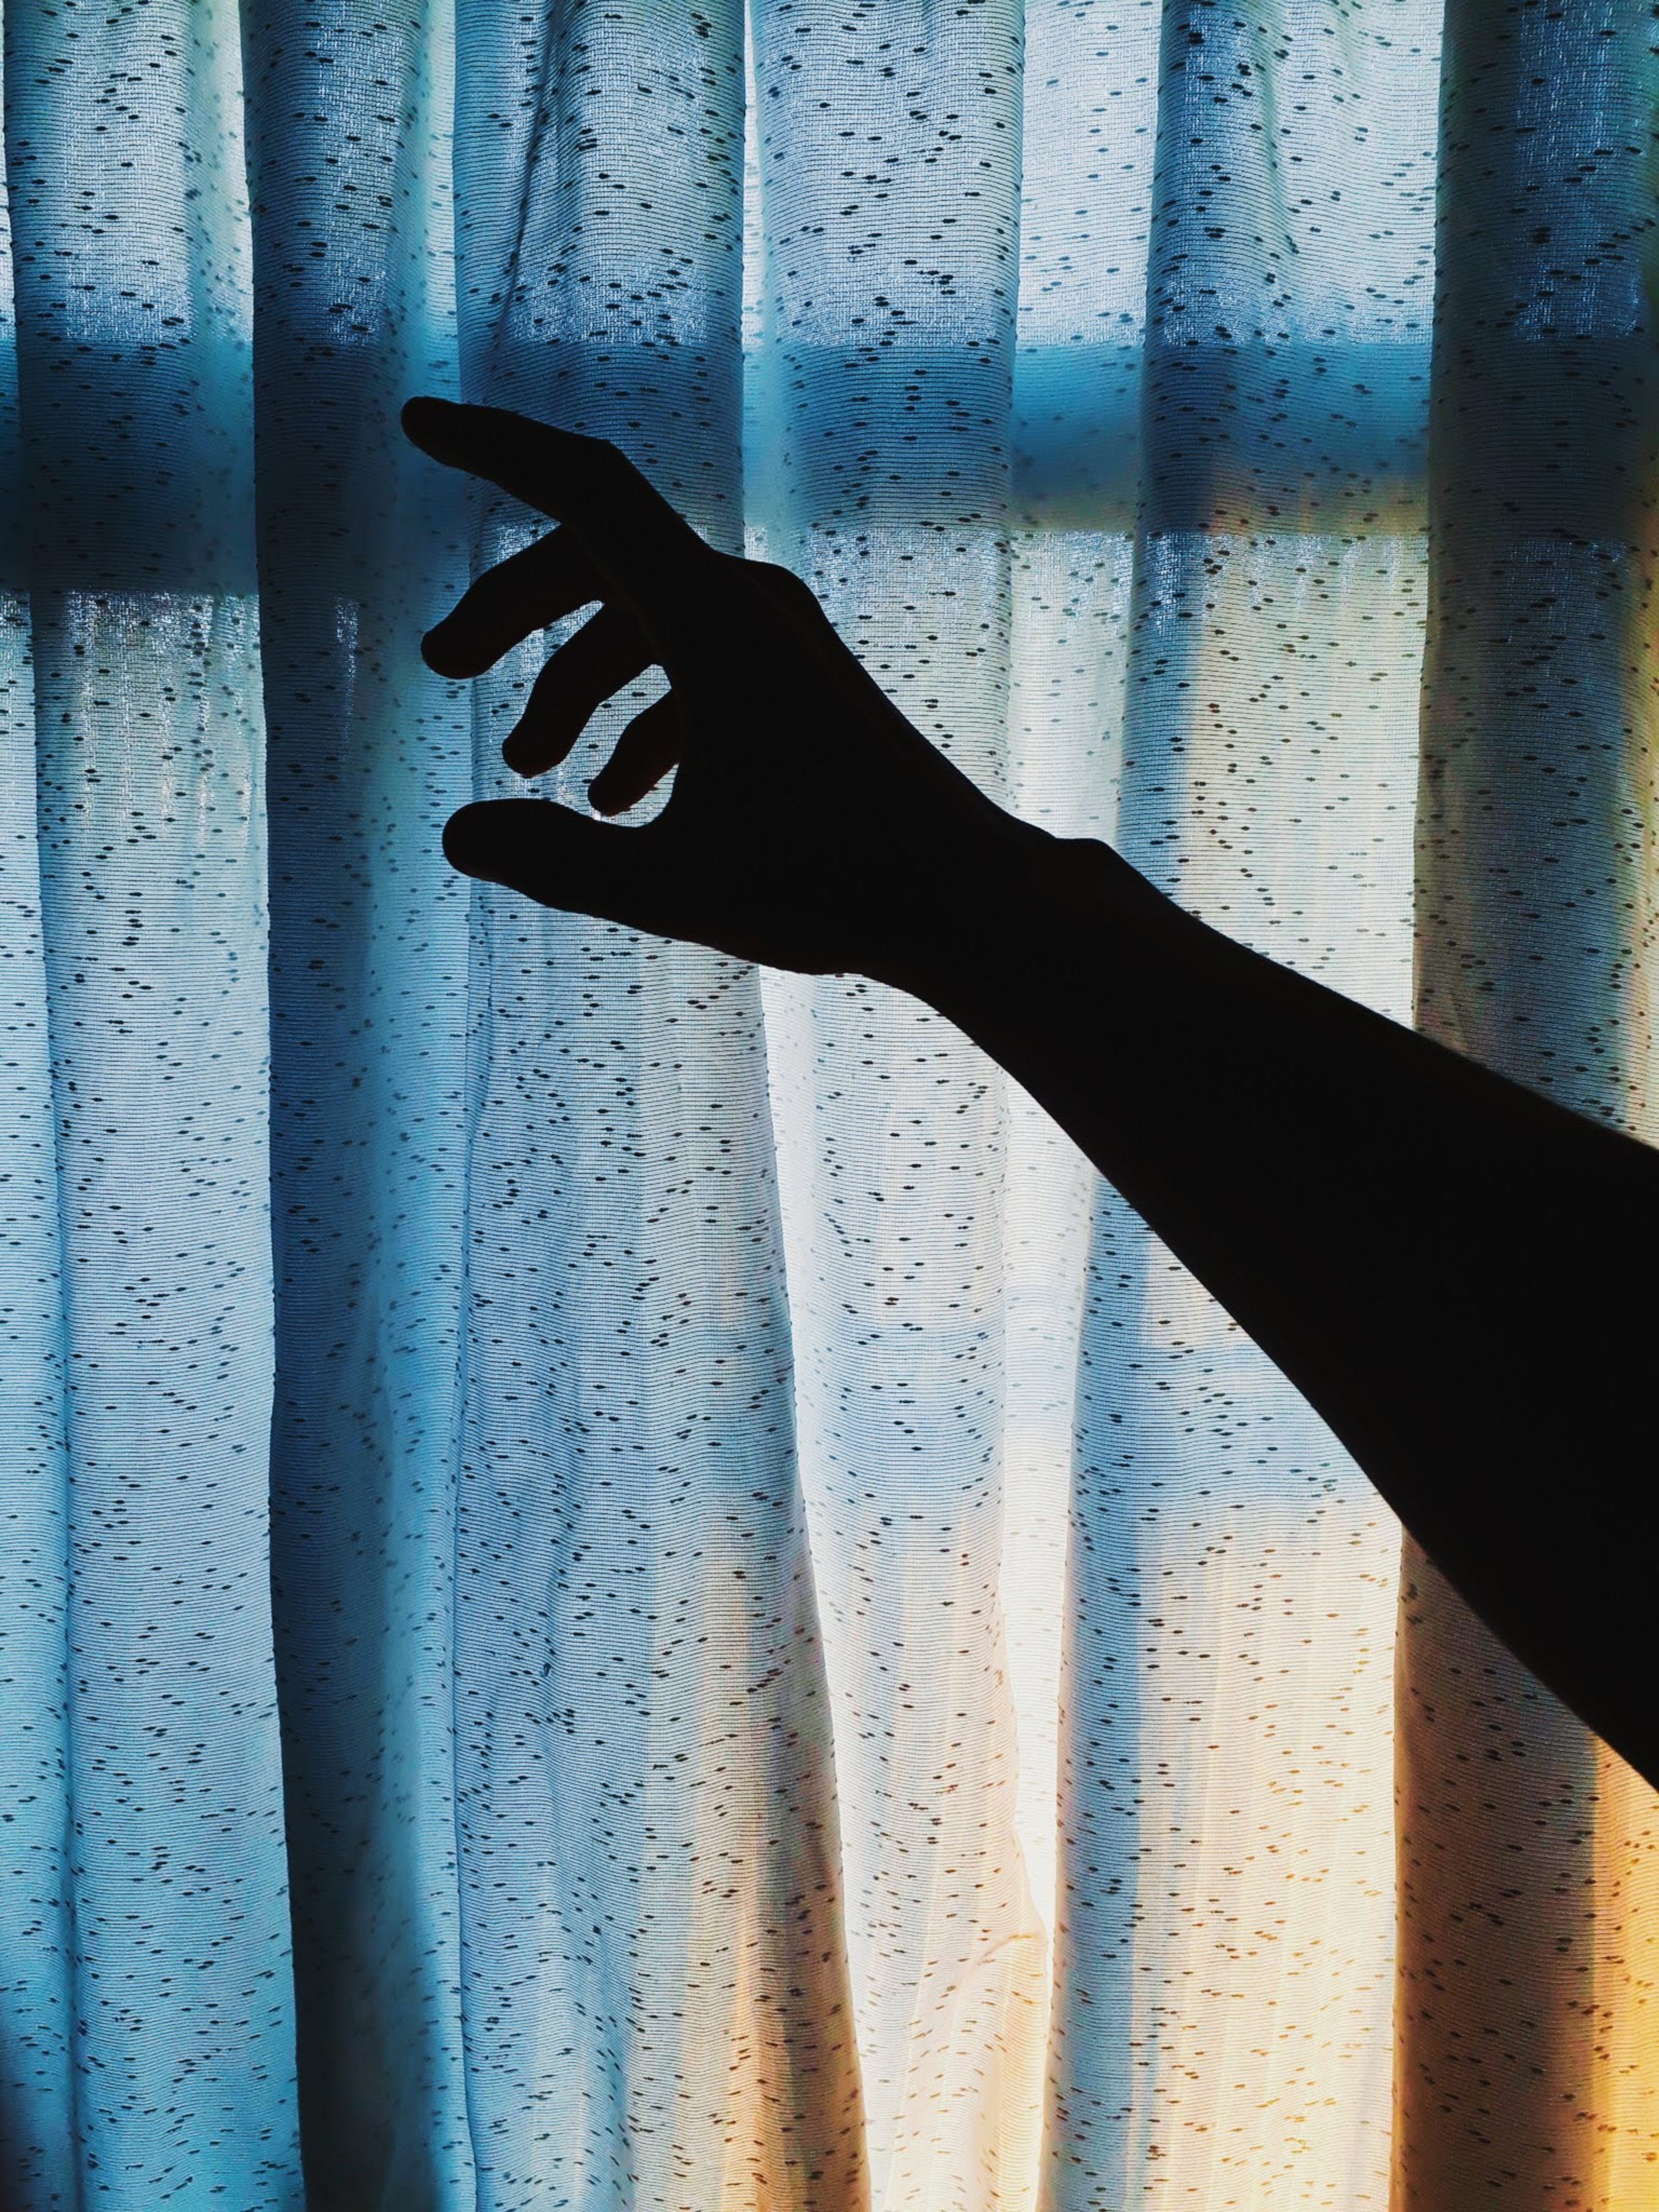 person-s-hand-near-curtain-2920855